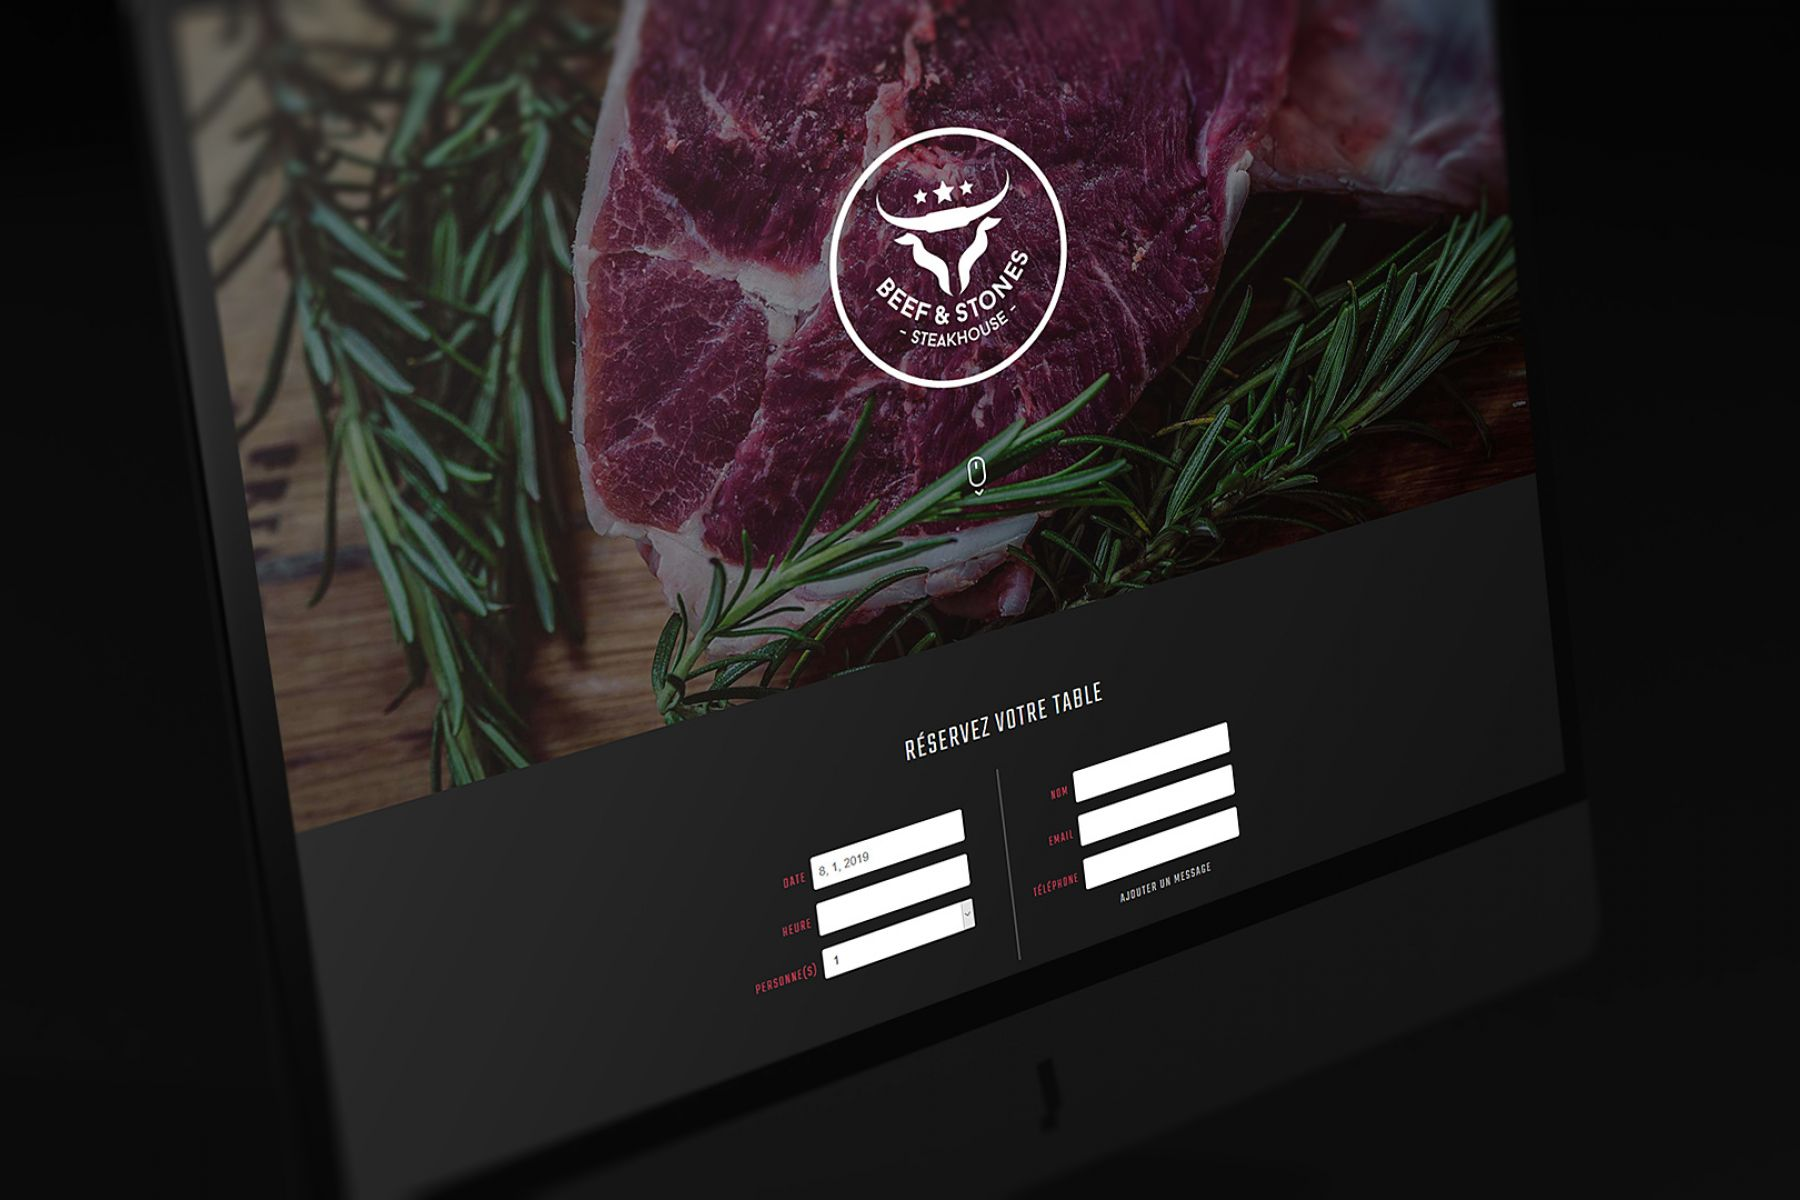 Landing page of the Beef & Stones Steakhouse in Esch-sur-Alzette.